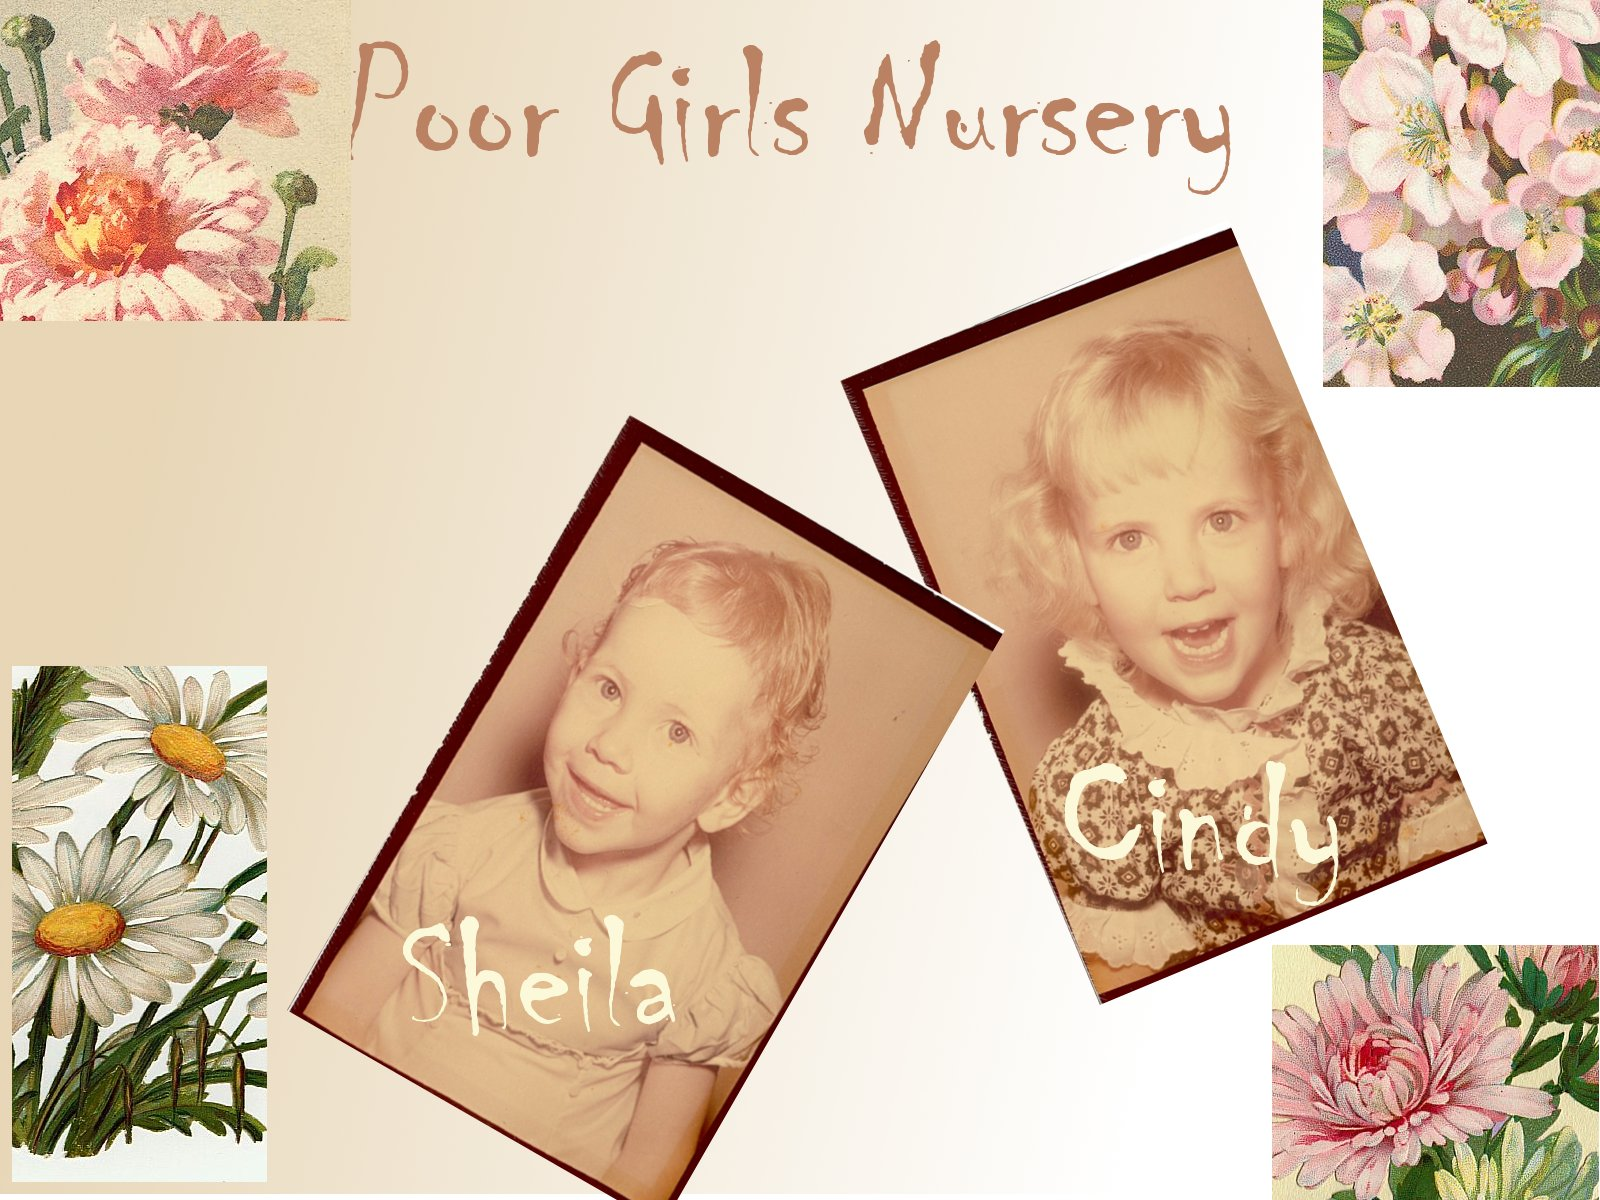 Poor Girls Nursery